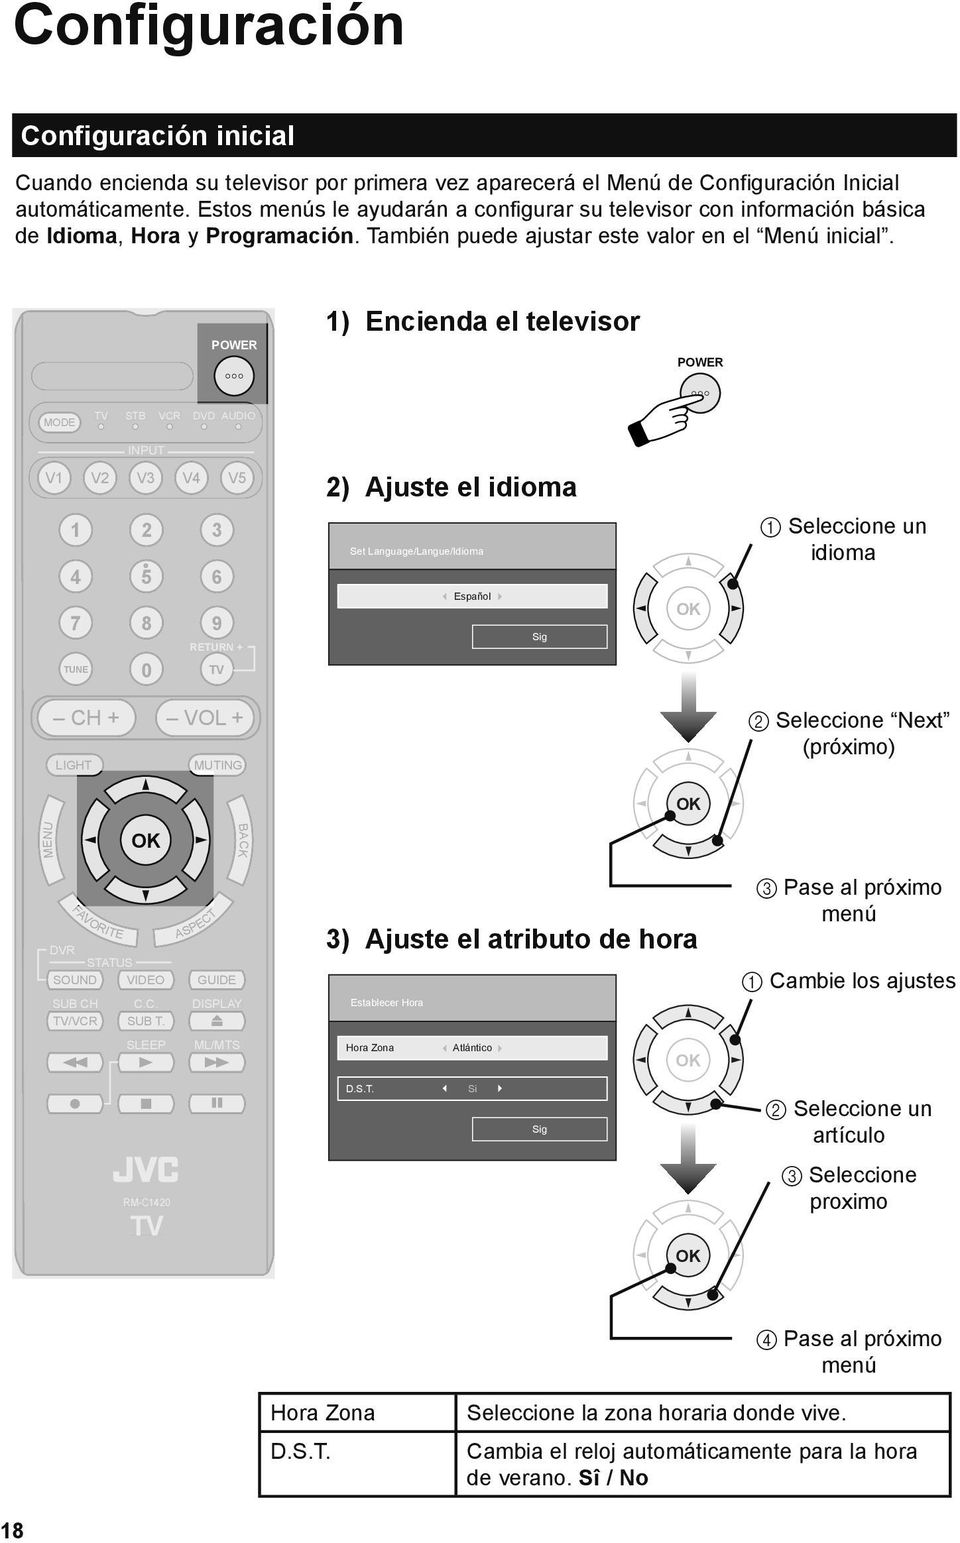 POWER 1) Encienda el televisor POWER MODE TV STB VCR DVD AUDIO INPUT V1 V2 V3 V4 V5 1 2 3 4 5 6 7 8 9 TUNE 0 RETURN + TV 2) Ajuste el idioma Set Language/Langue/Idioma Español Sig 1 Seleccione un